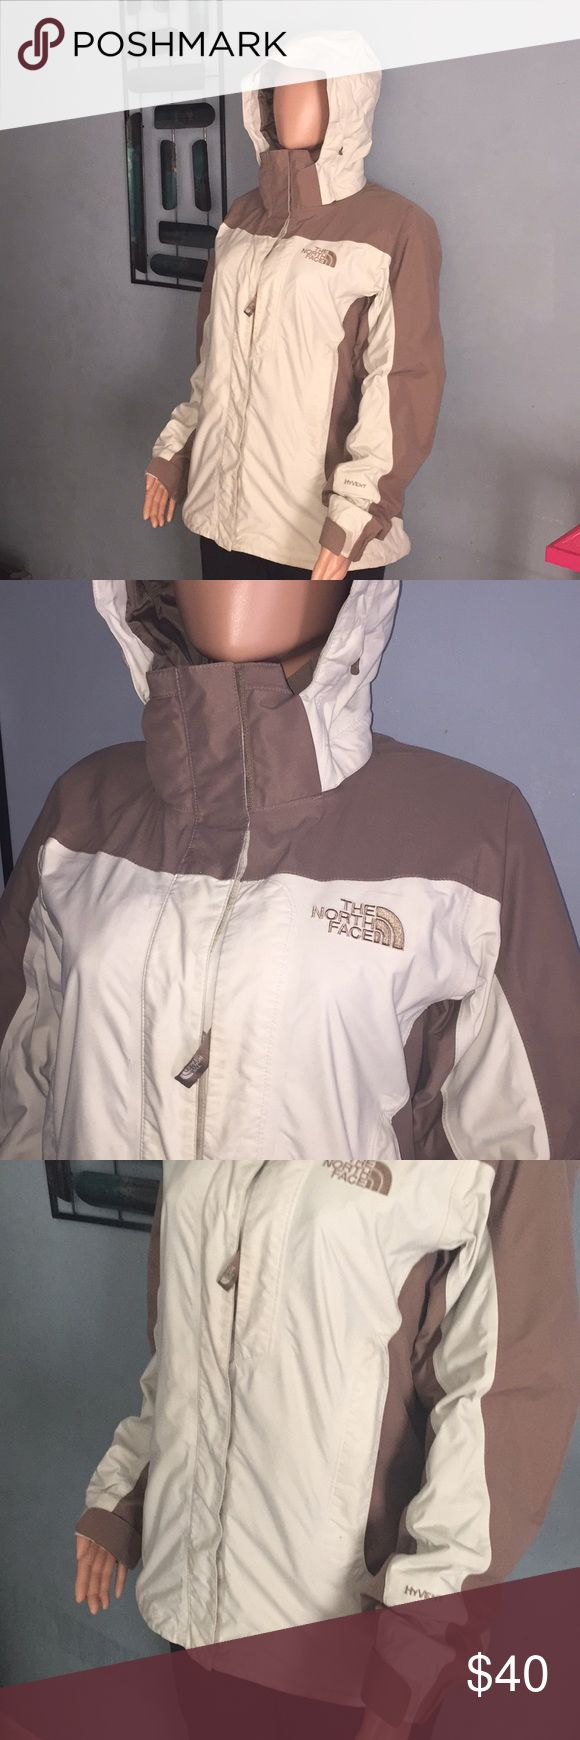 The North Face In great condition no flows The North Face Jackets & Coats